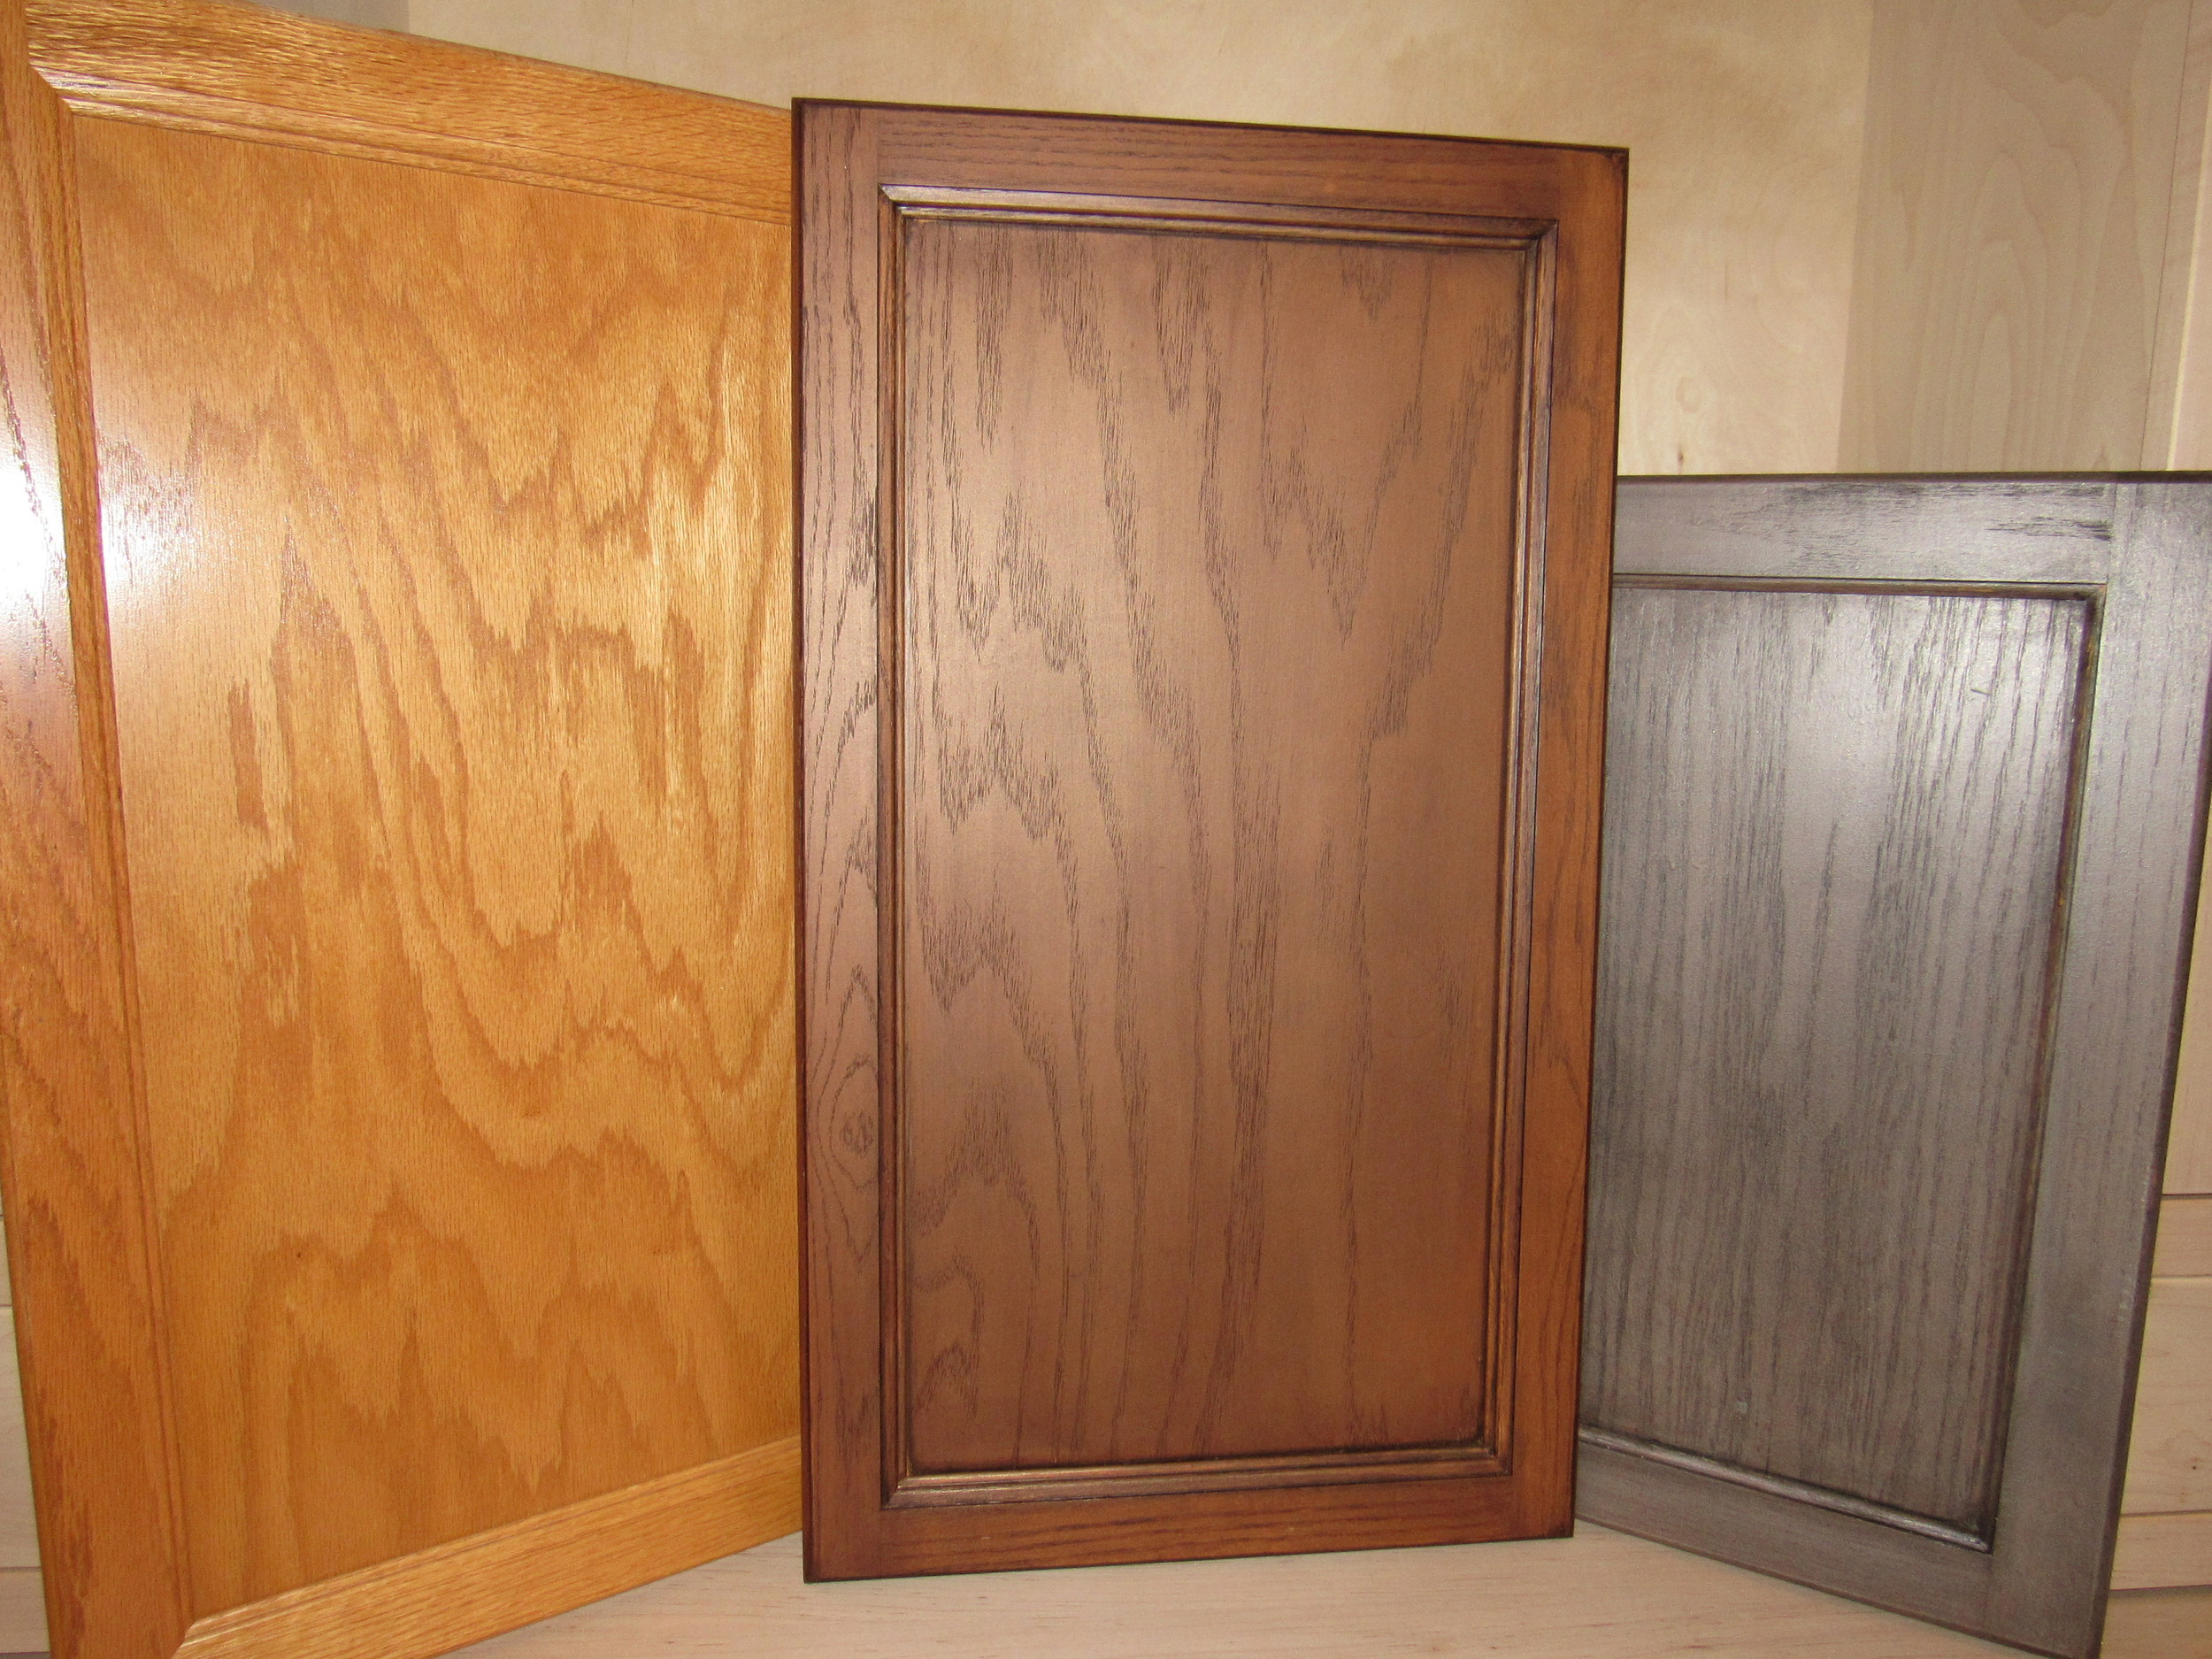 Door on left is original stain (before) while the two doors on the right are the Re-Stained finished (after).